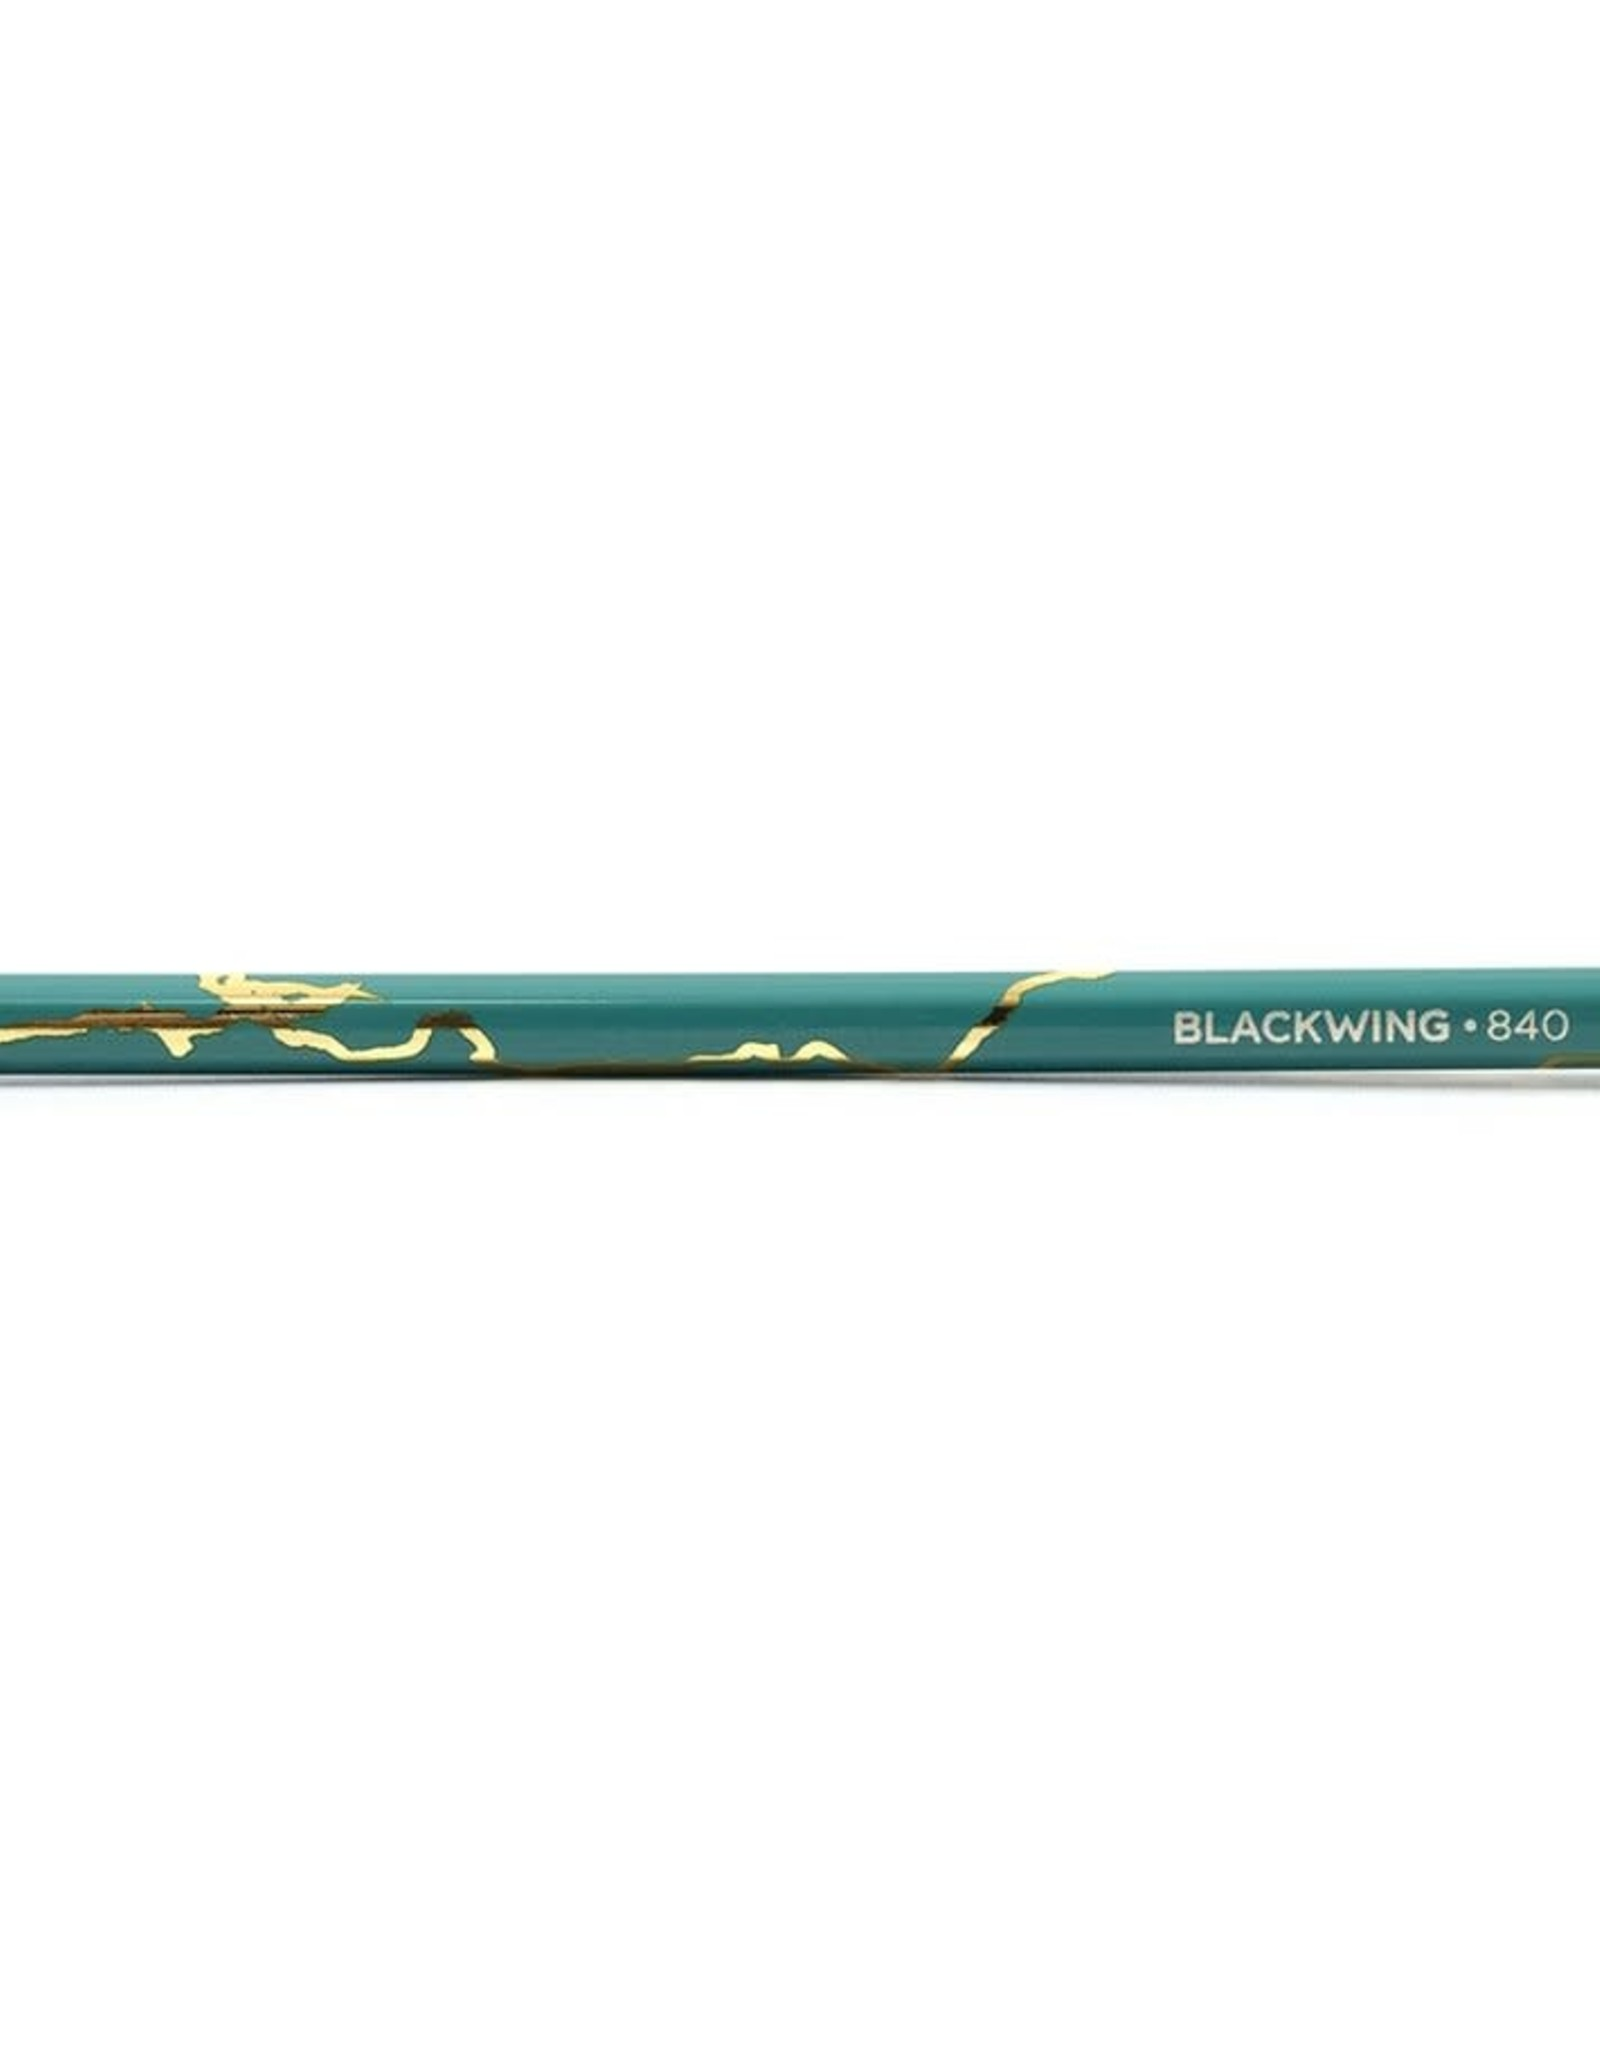 Blackwing Blackwing Volumes #840 Box of 12